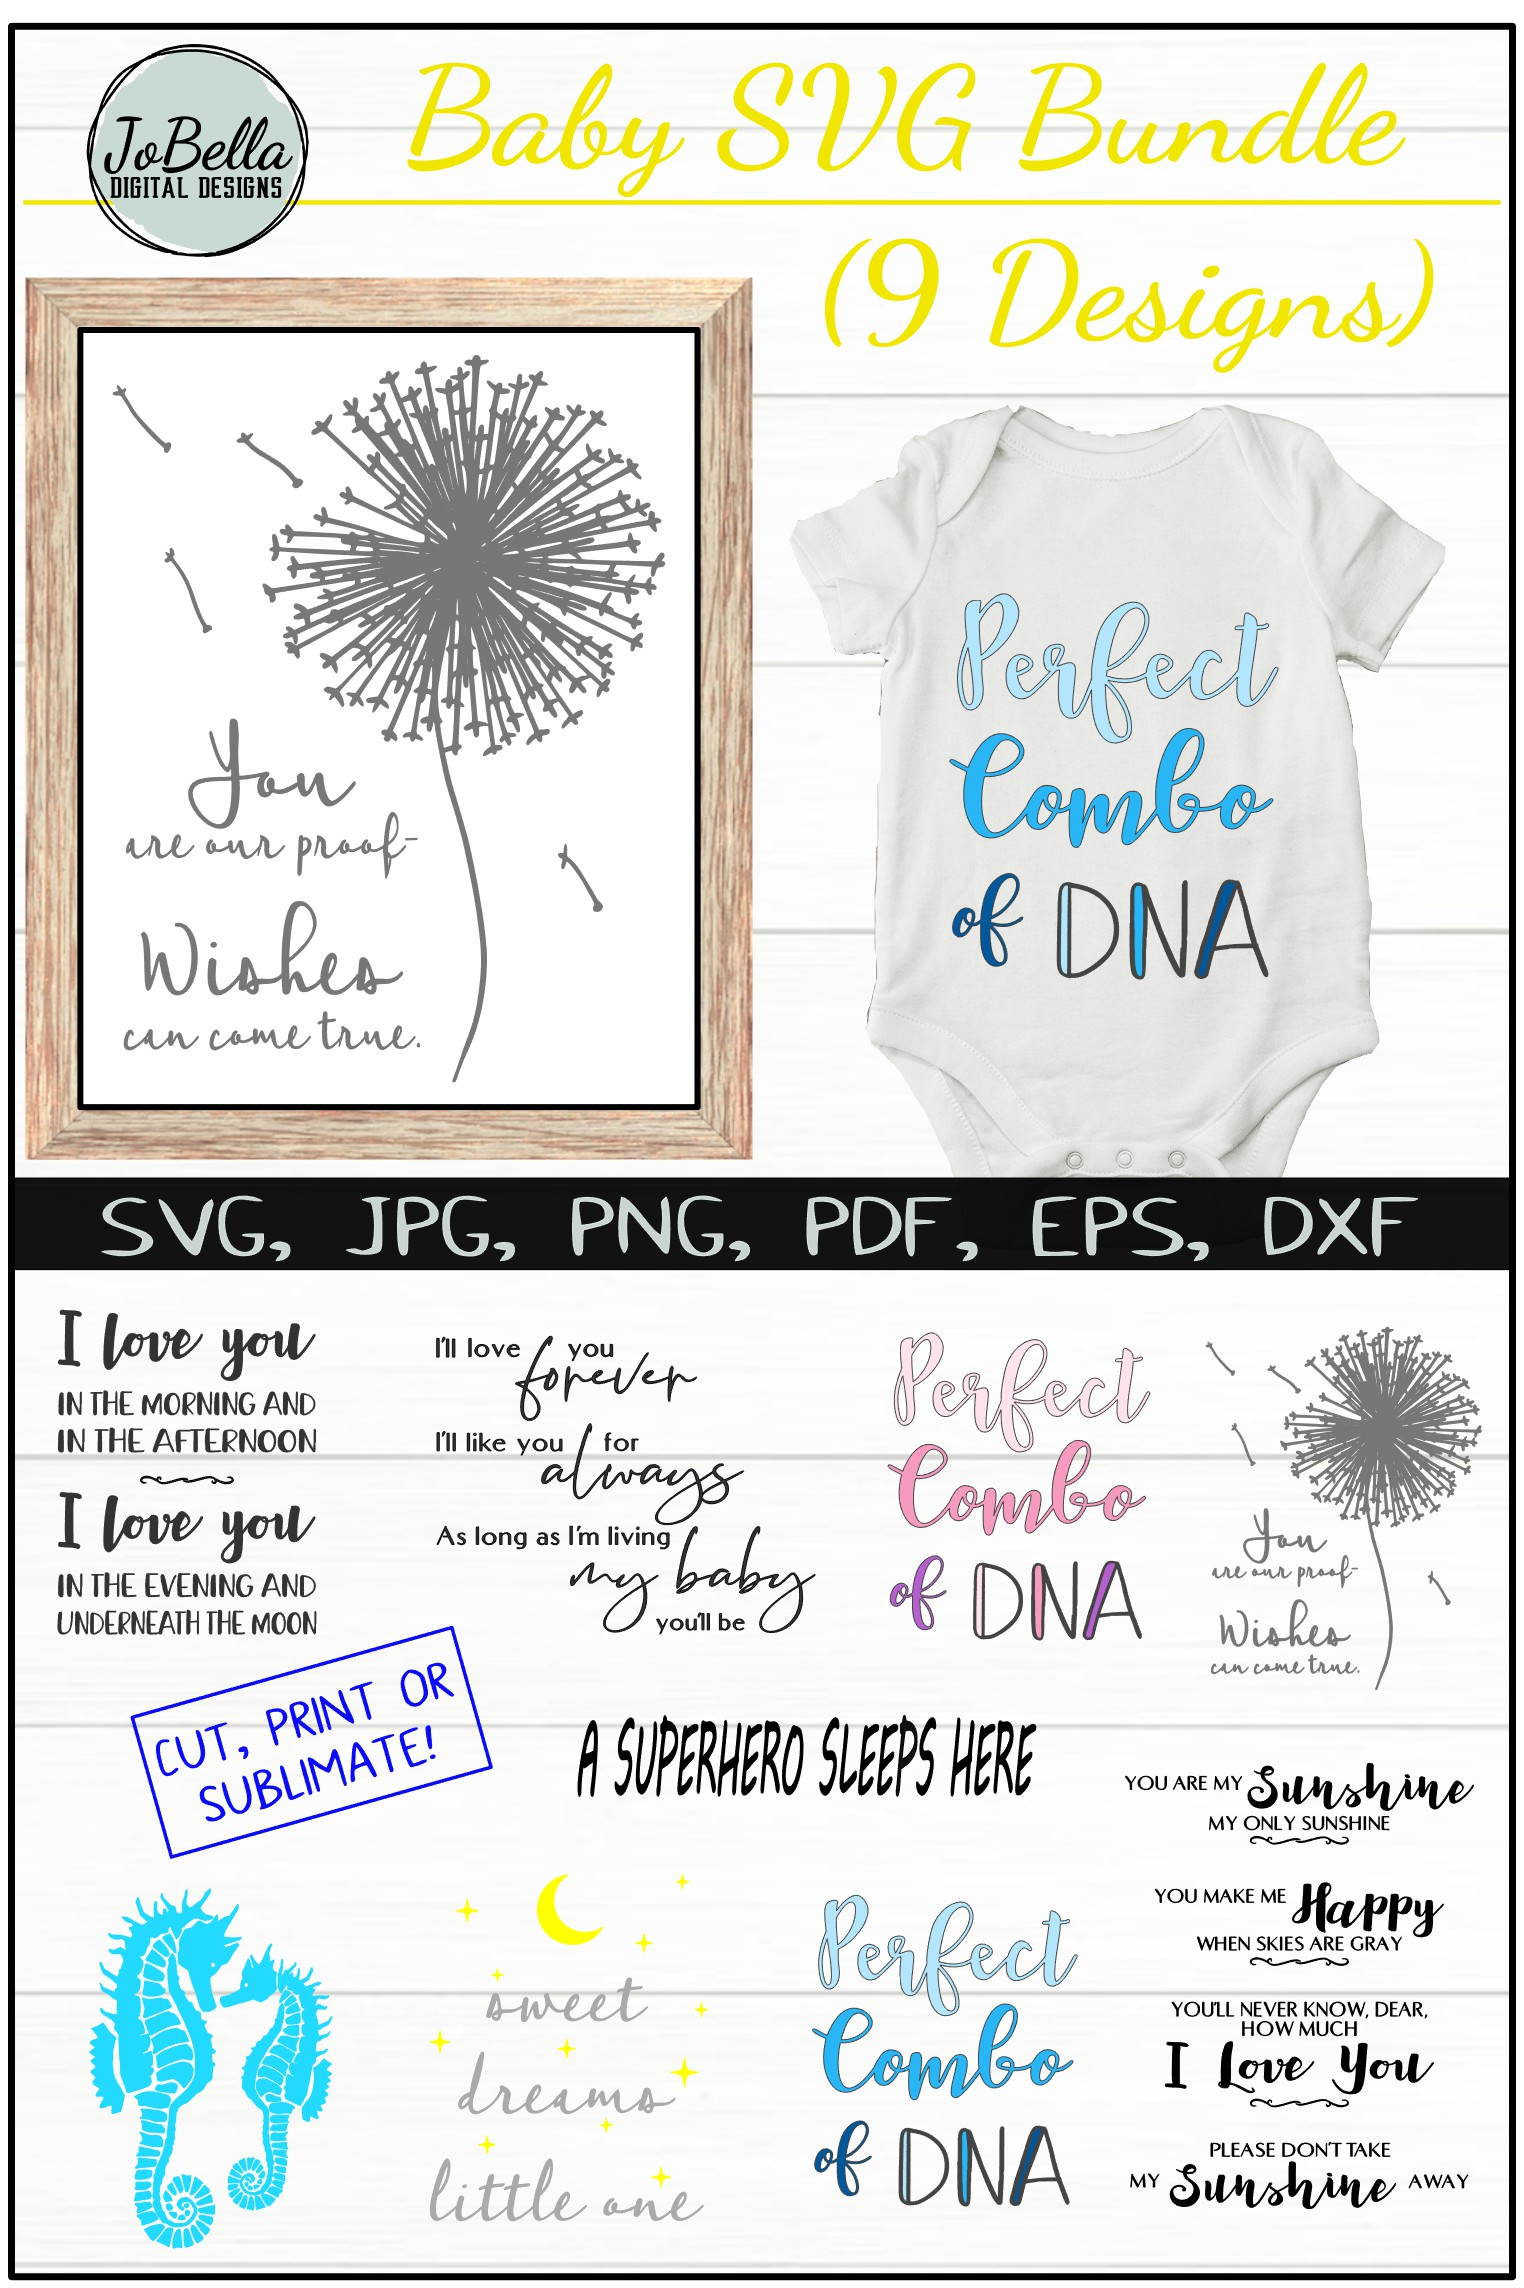 Baby SVG Bundle, Sublimation PNGs and Printables example image 11